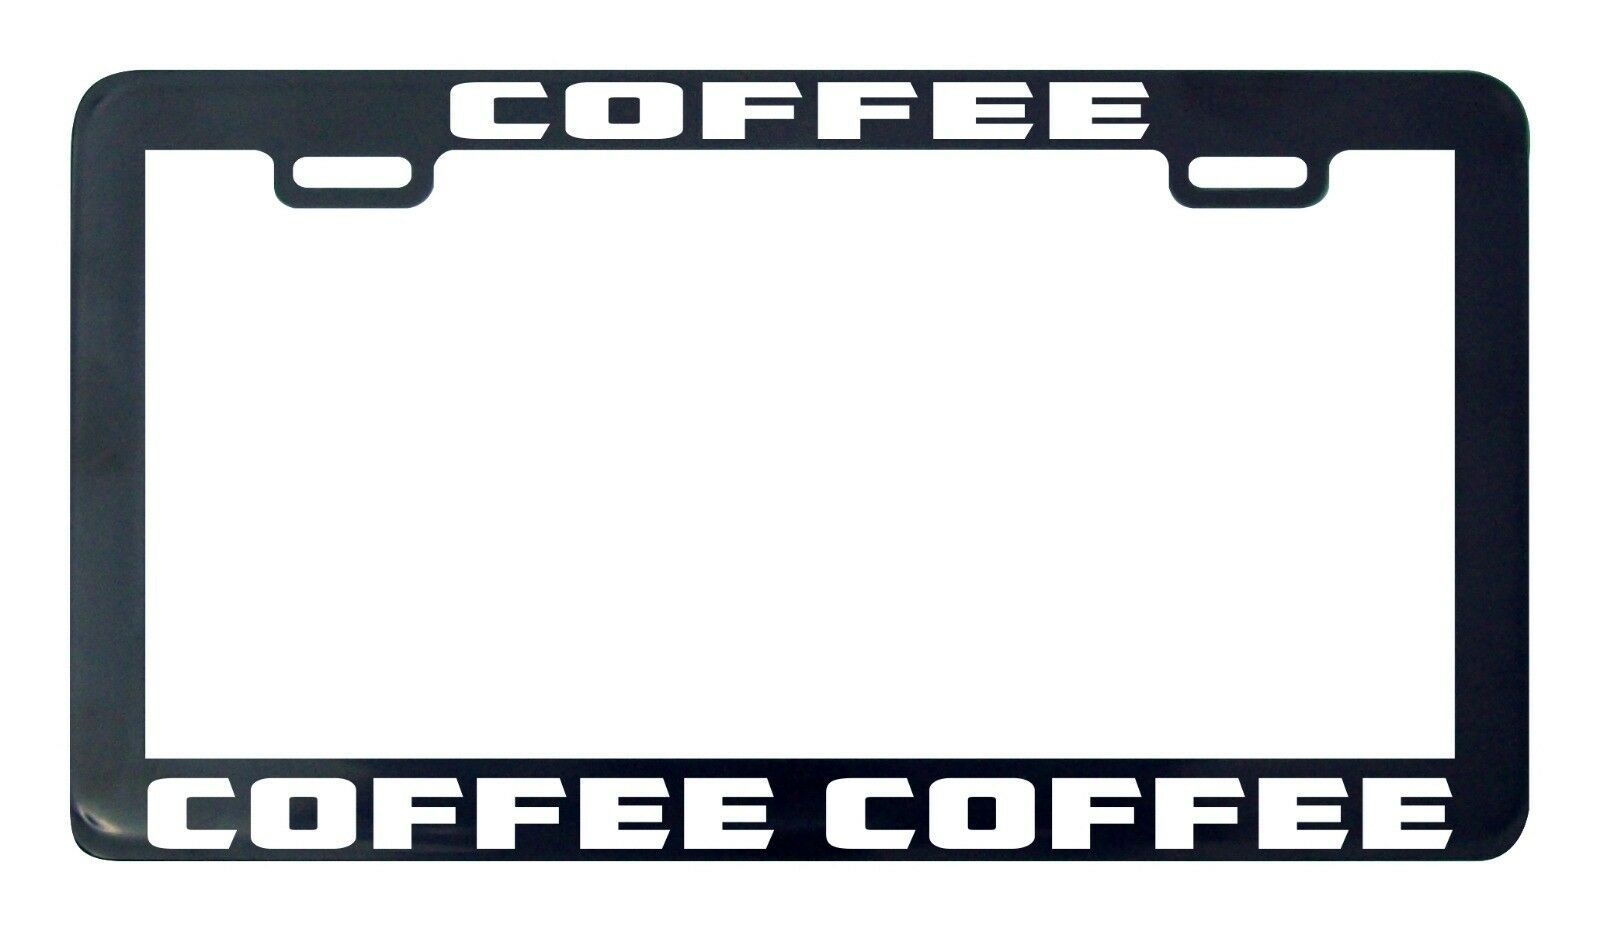 Primary image for Coffee Coffee Coffee license plate frame